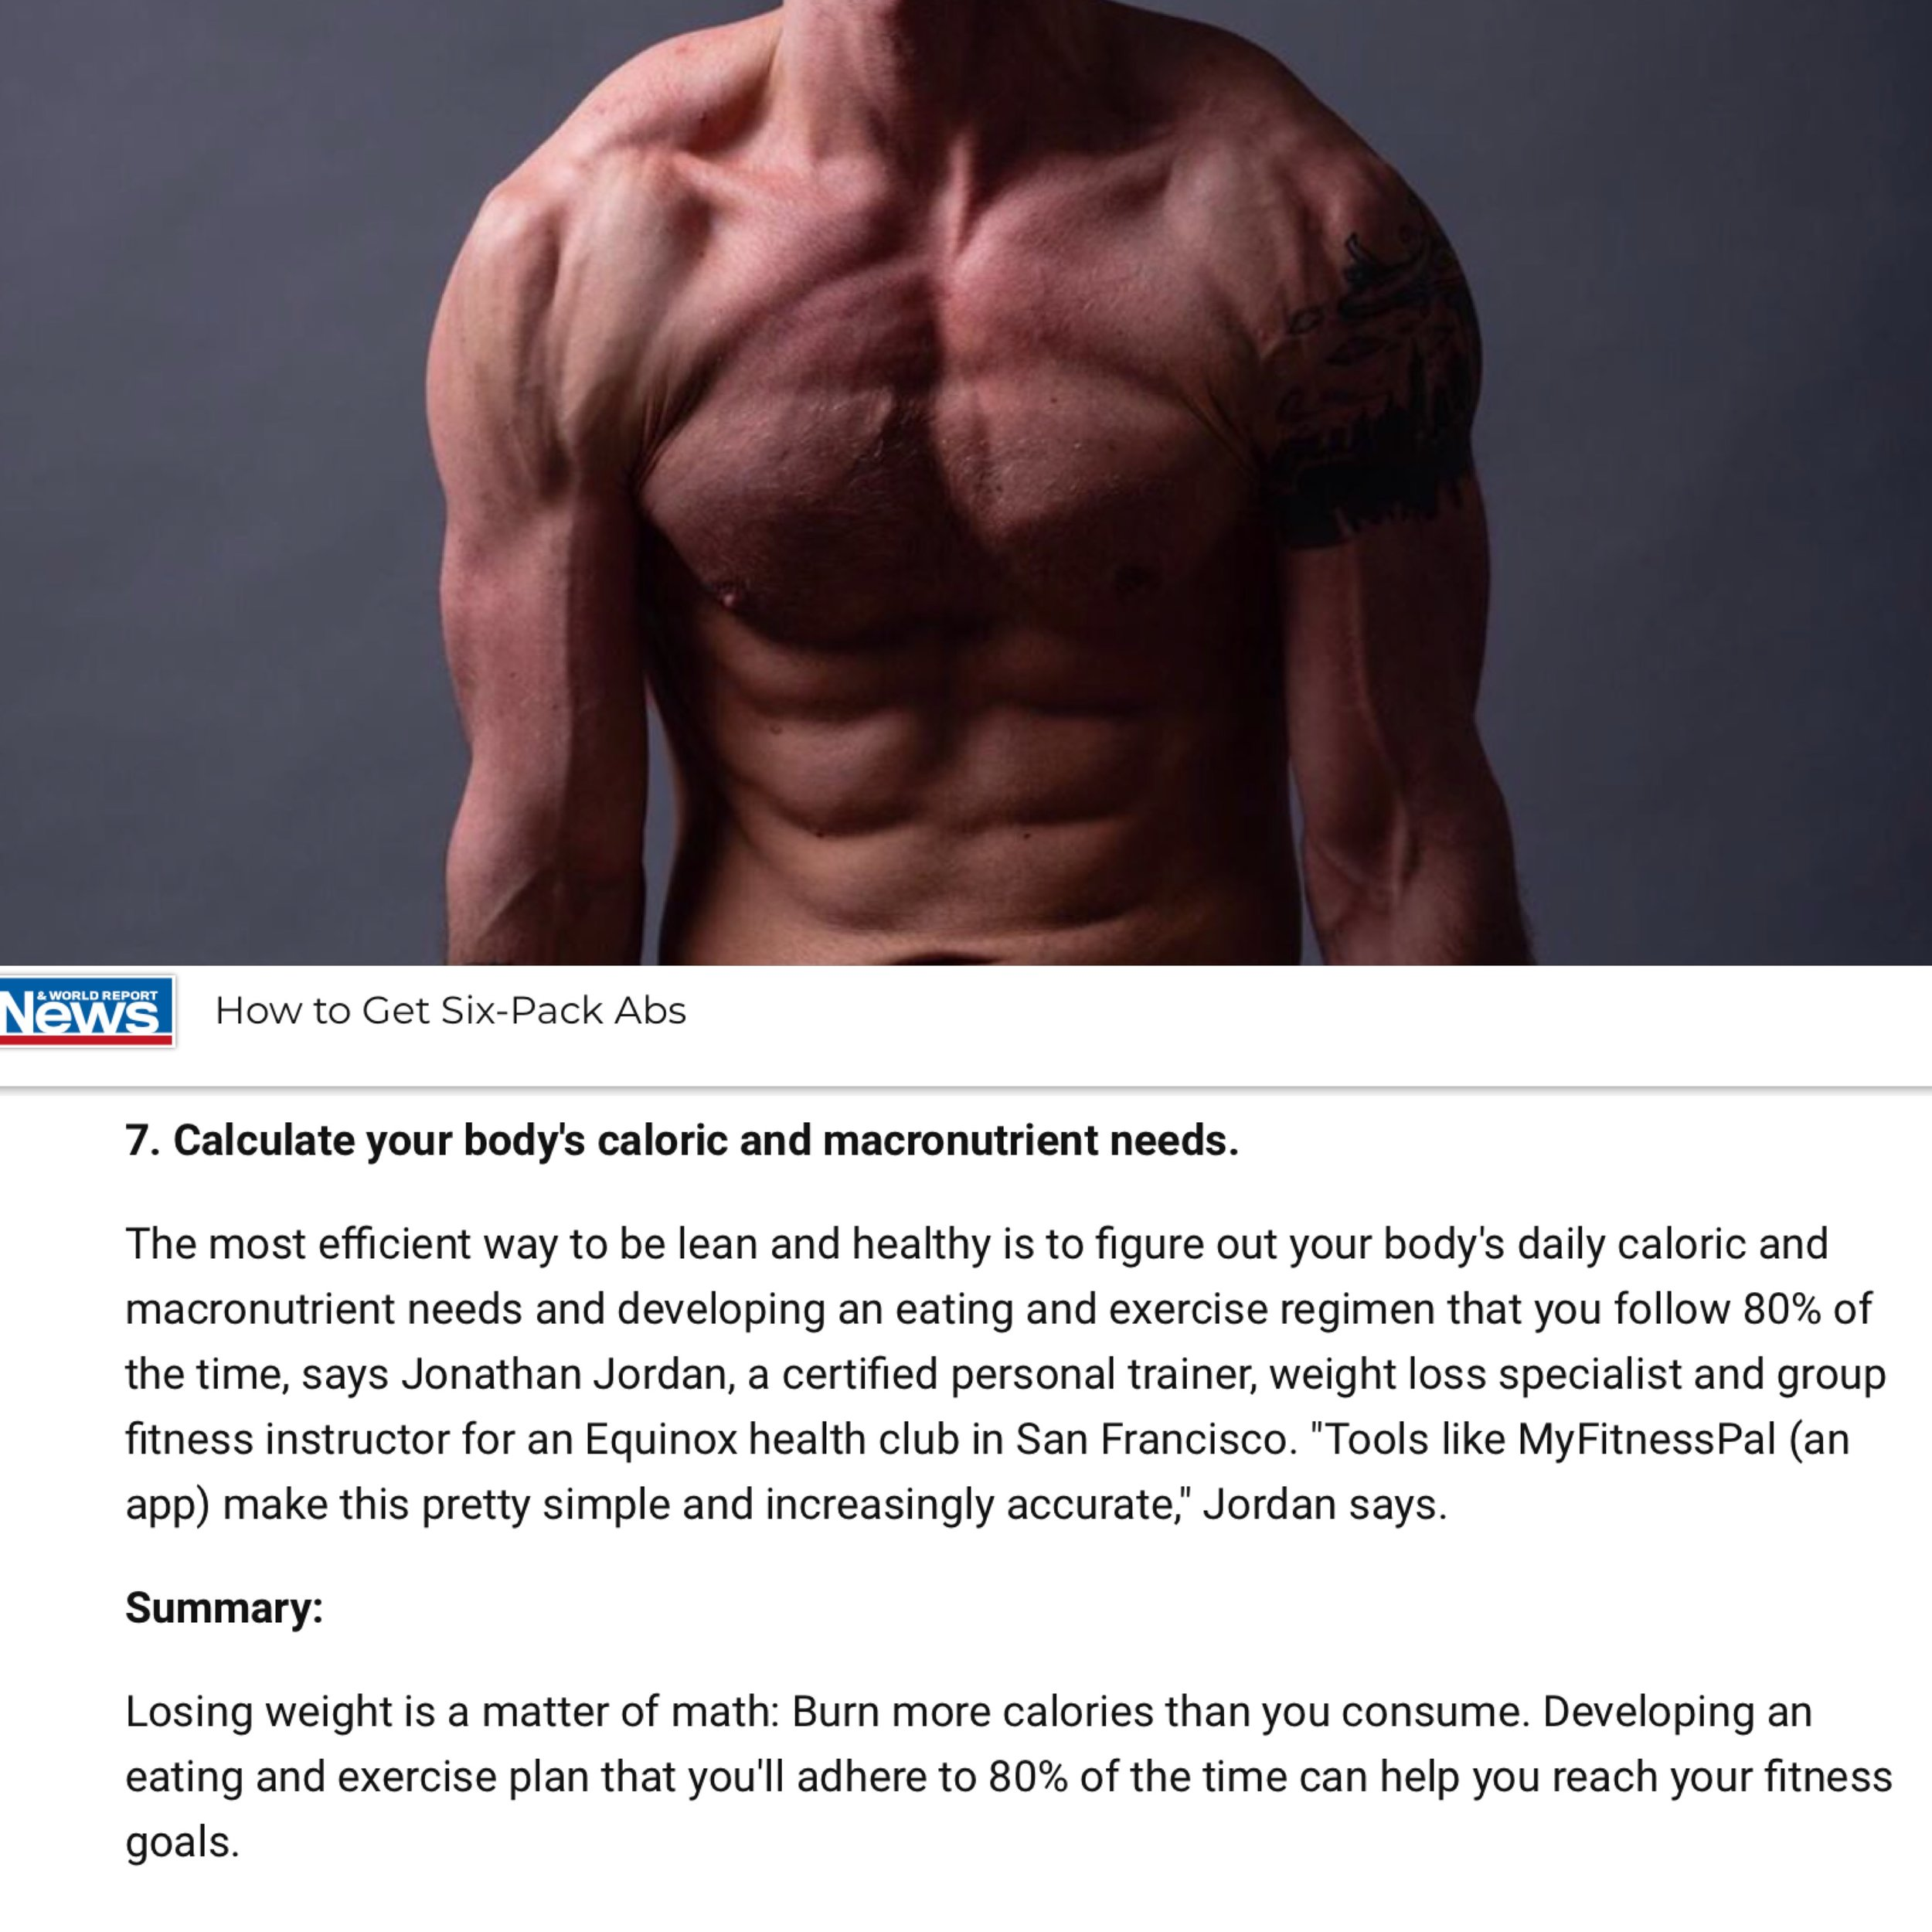 Simple diet plan for 6 pack abs